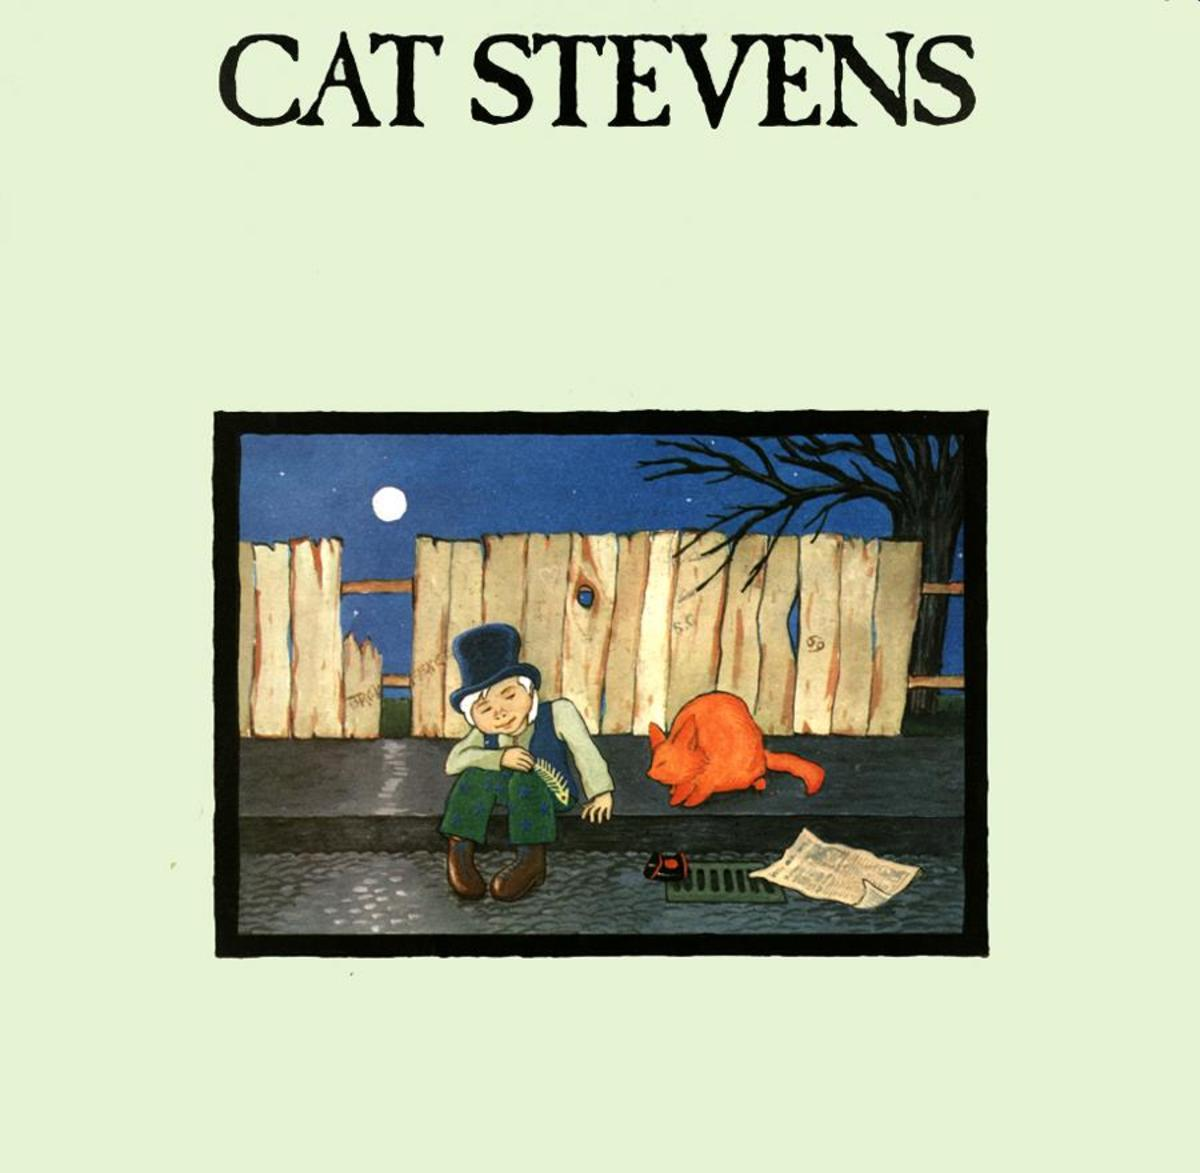 Teaser and the Firecat was not the only Cat Stevens album to feature the musician's artwork on the cover.